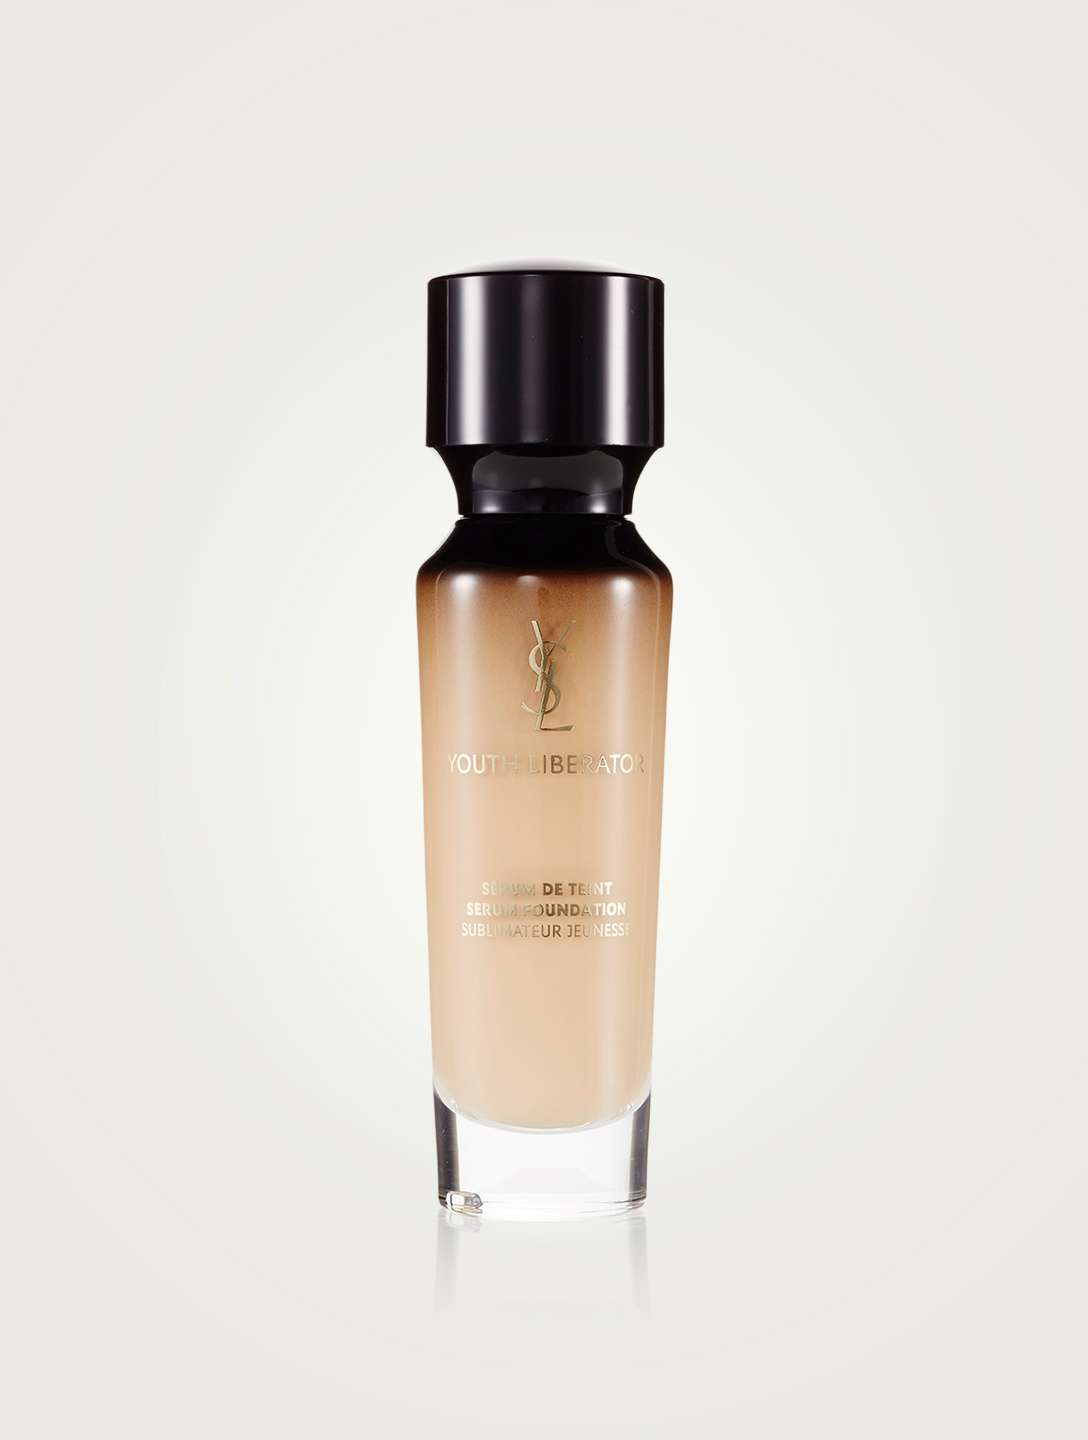 YVES SAINT LAURENT Youth Liberator Serum Foundation Beauty Neutral